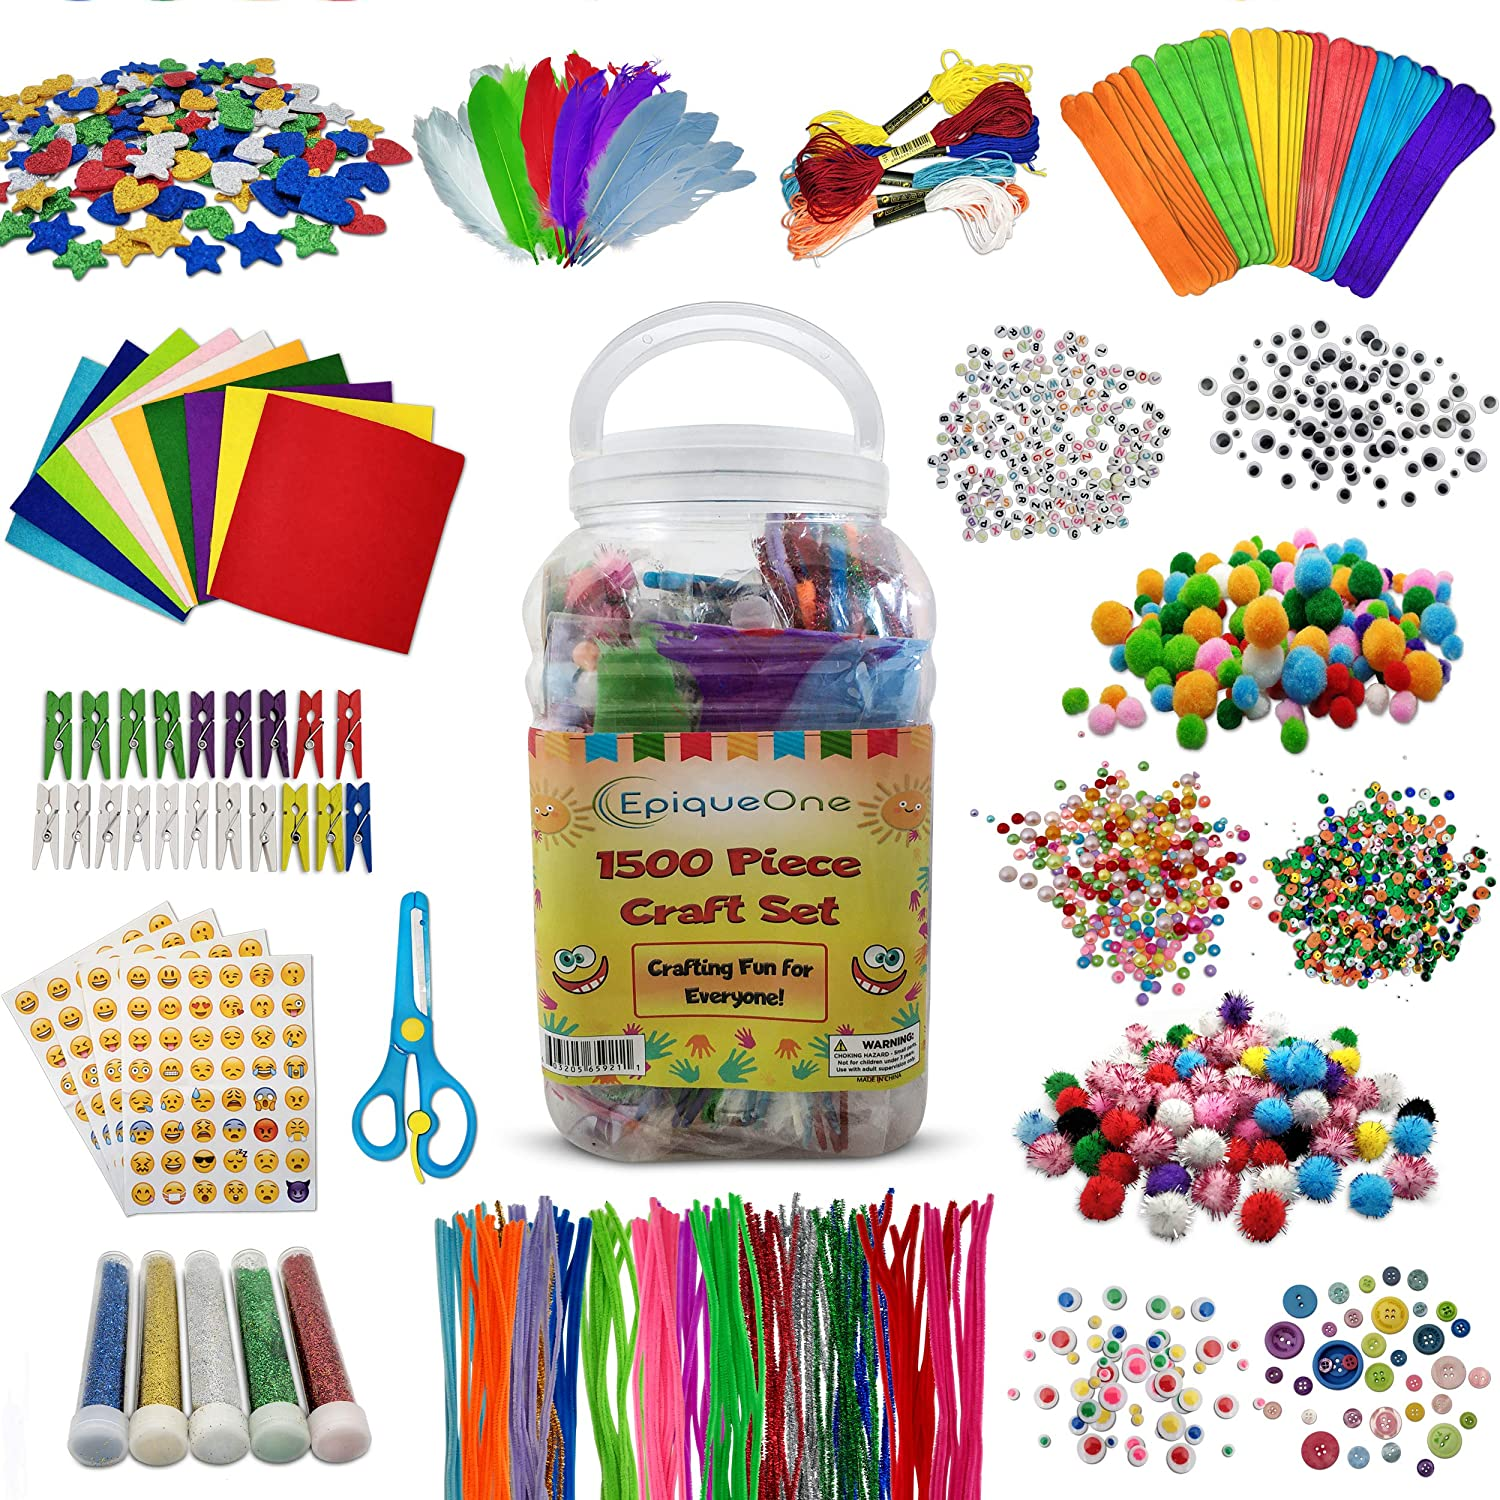 Create Your Own Craft Activities Choice of 4